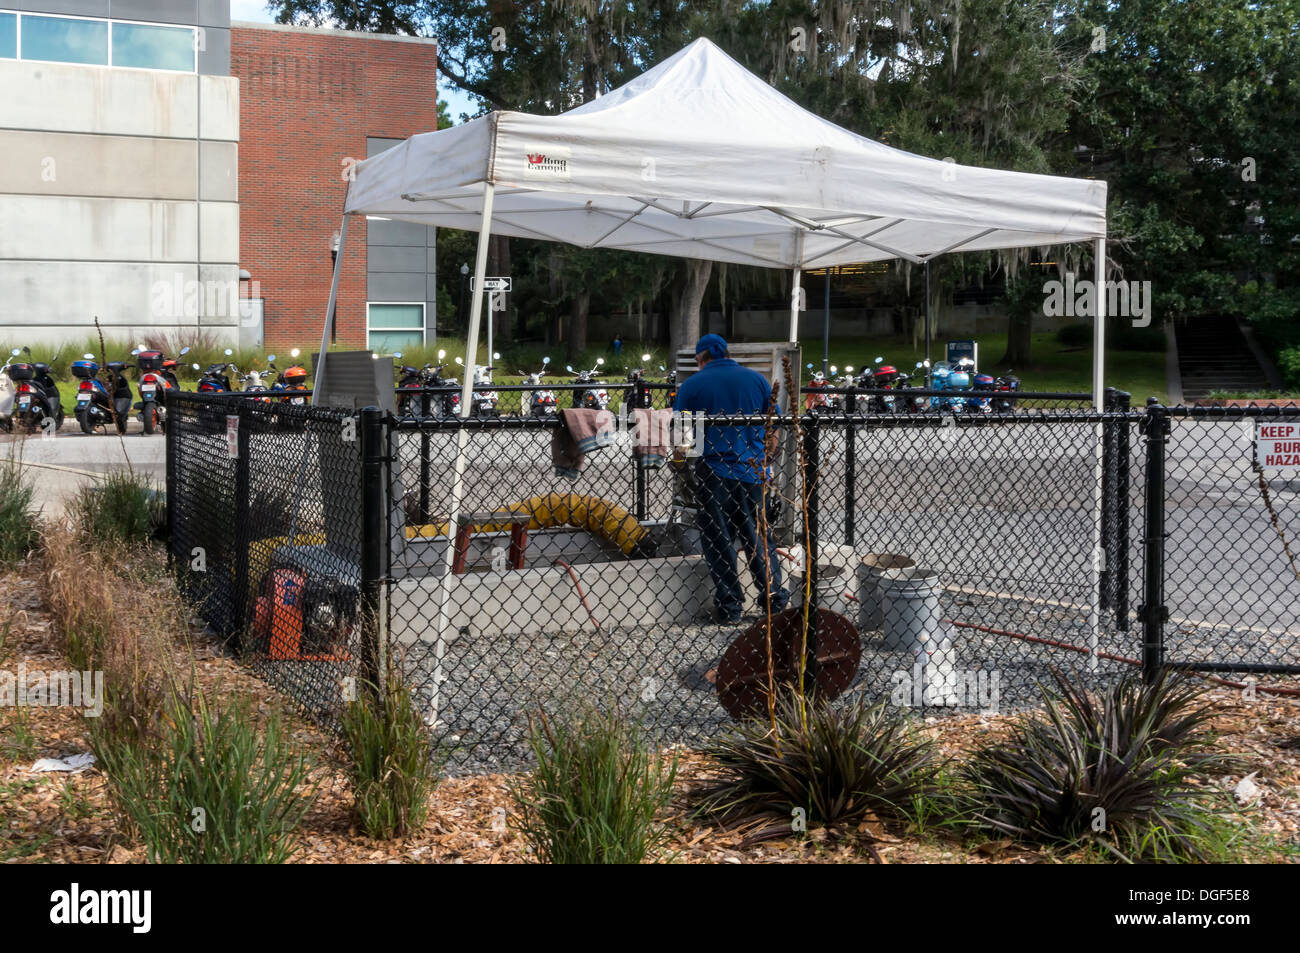 Utility worker working on underground utilities protected by a white canopy tent. - Stock Image